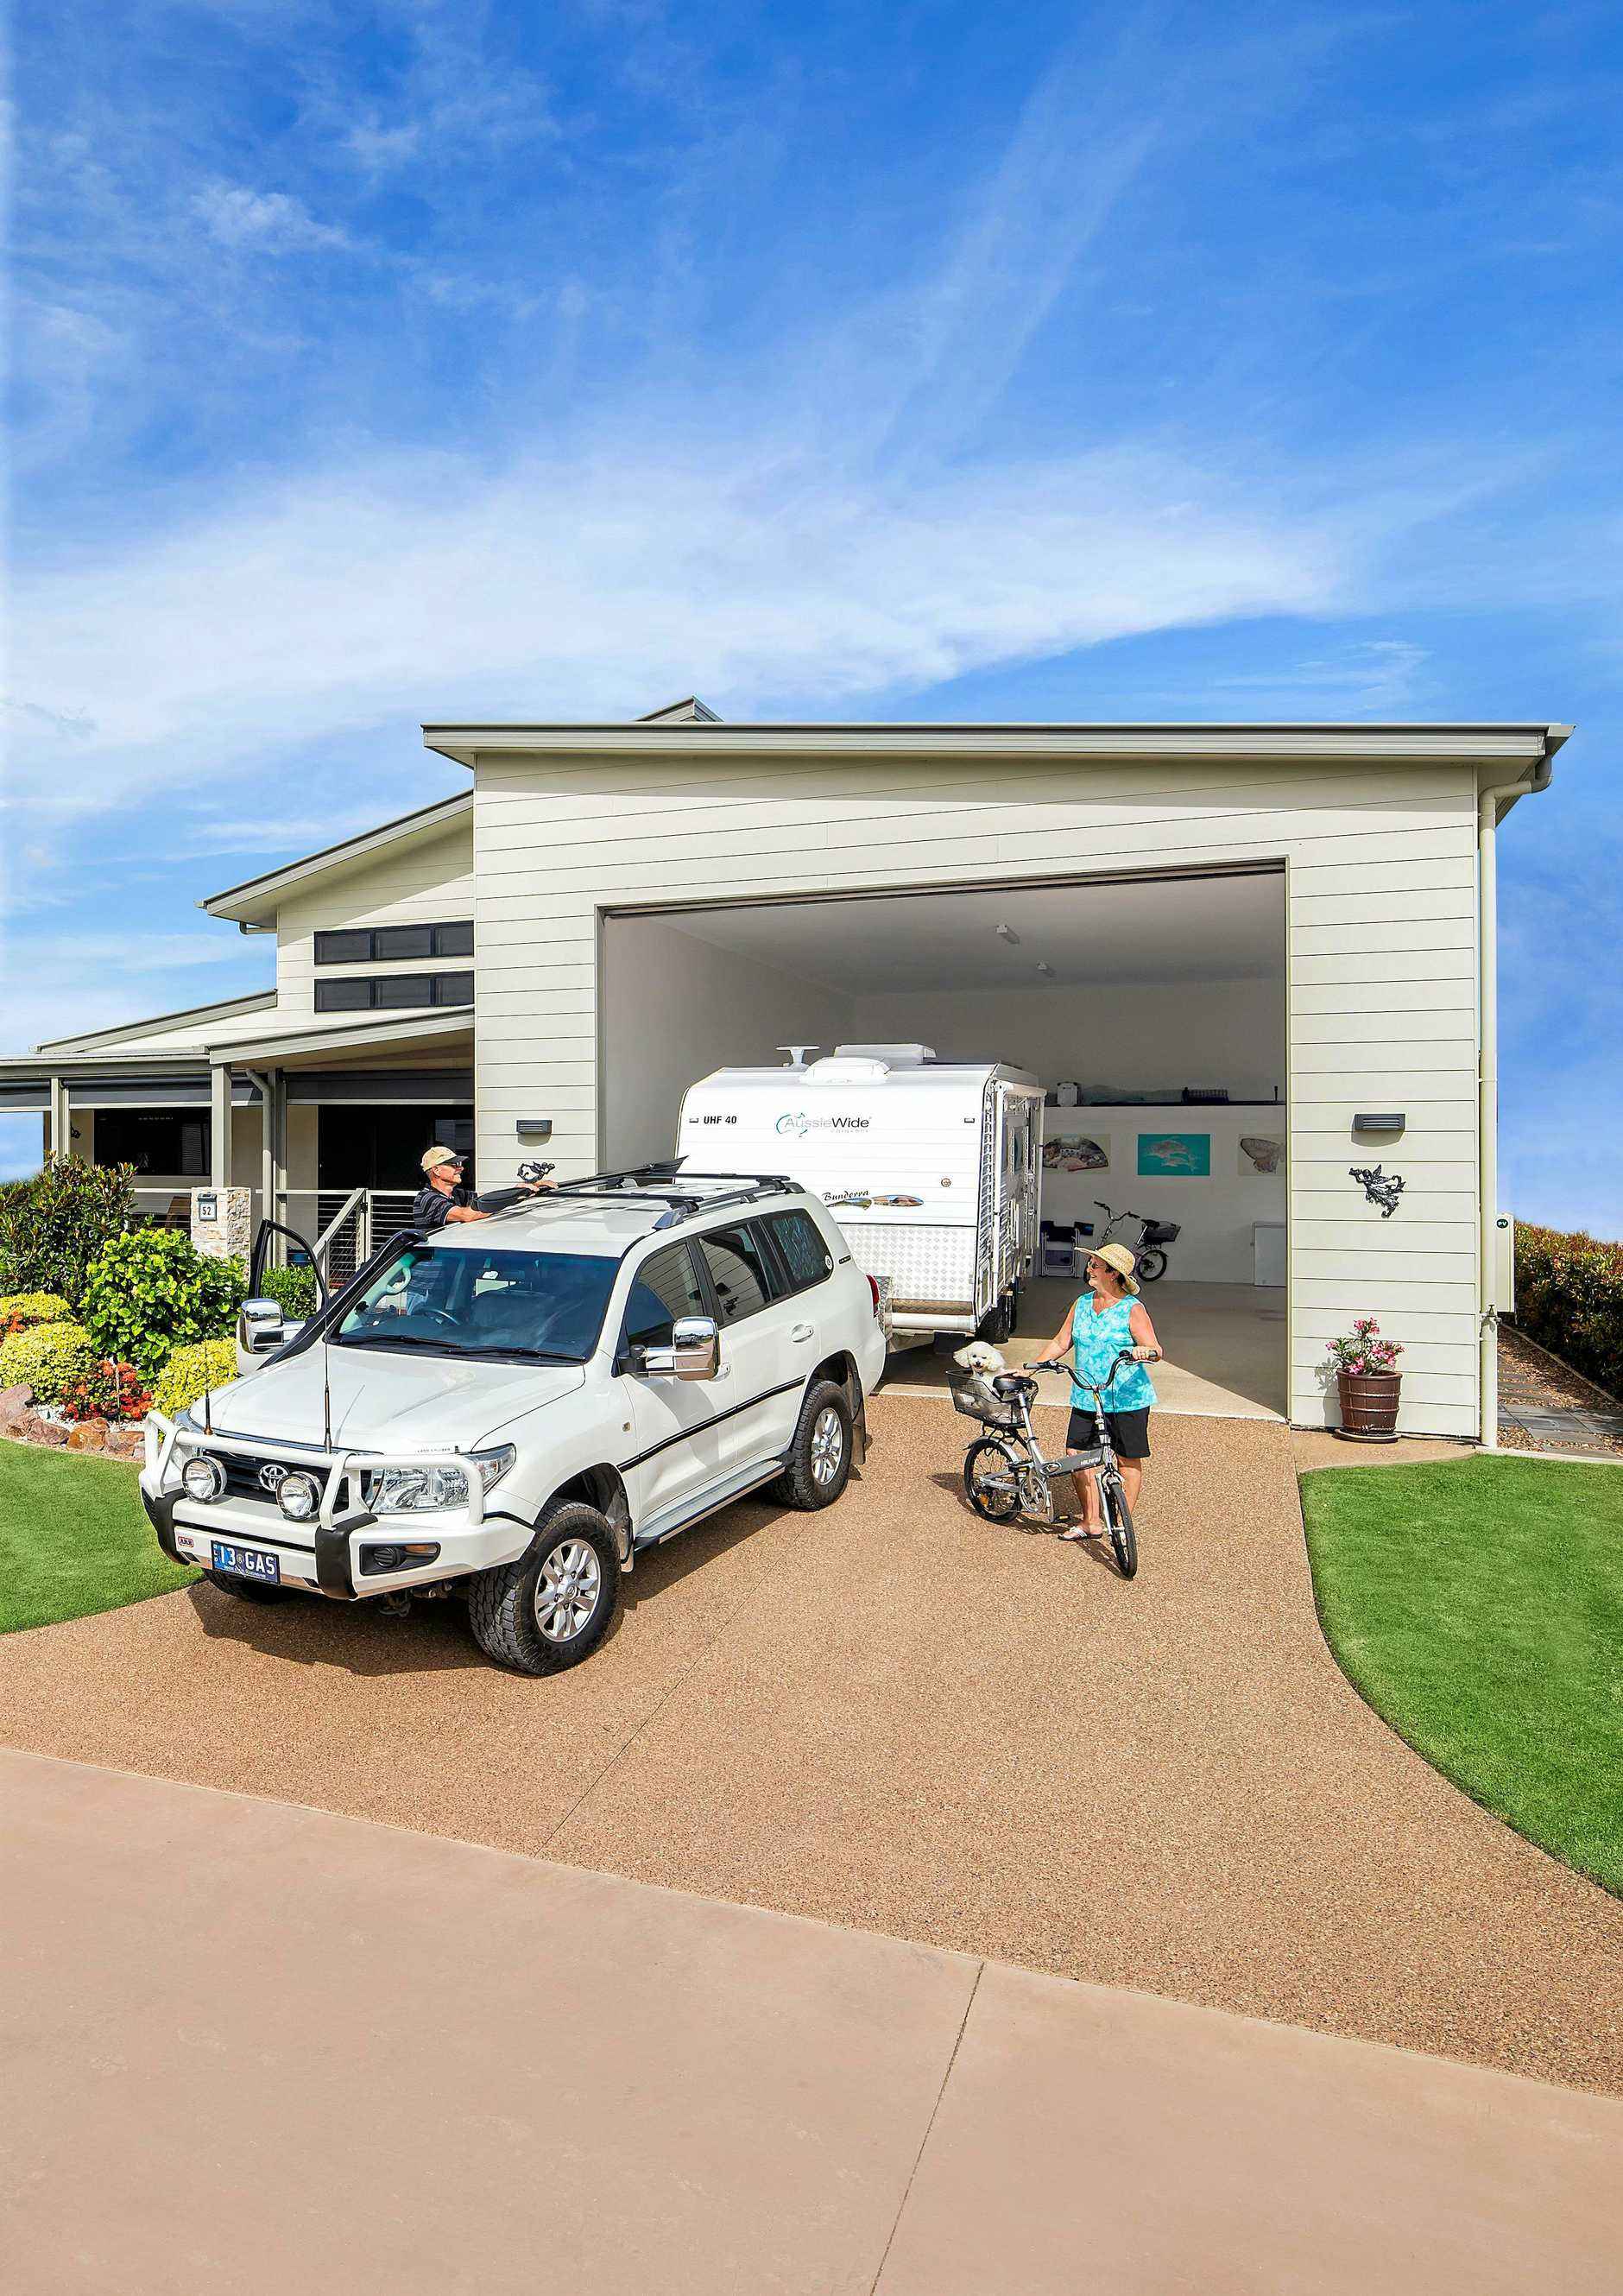 Station Creek Lifestyle Village has based its plans on the RV Homebase, like this home pictured which has a garage large enough to park a caravan.